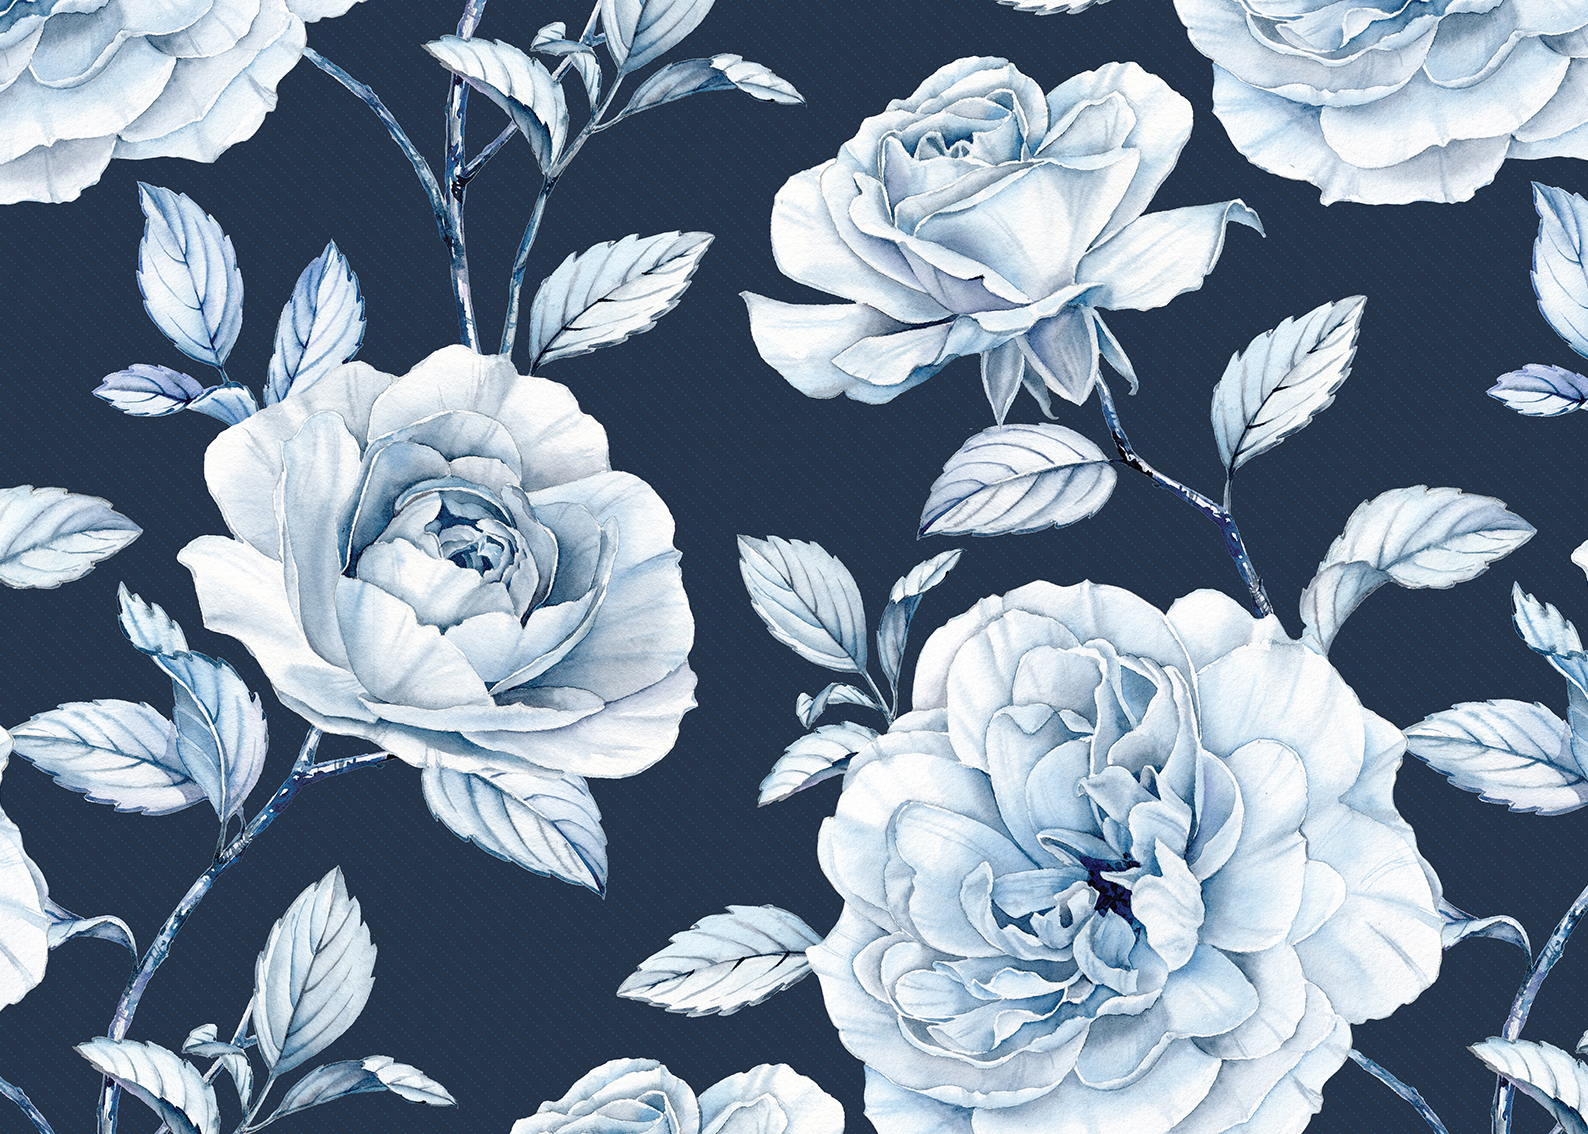 floral patterns and illustrations for royal insignia on behance